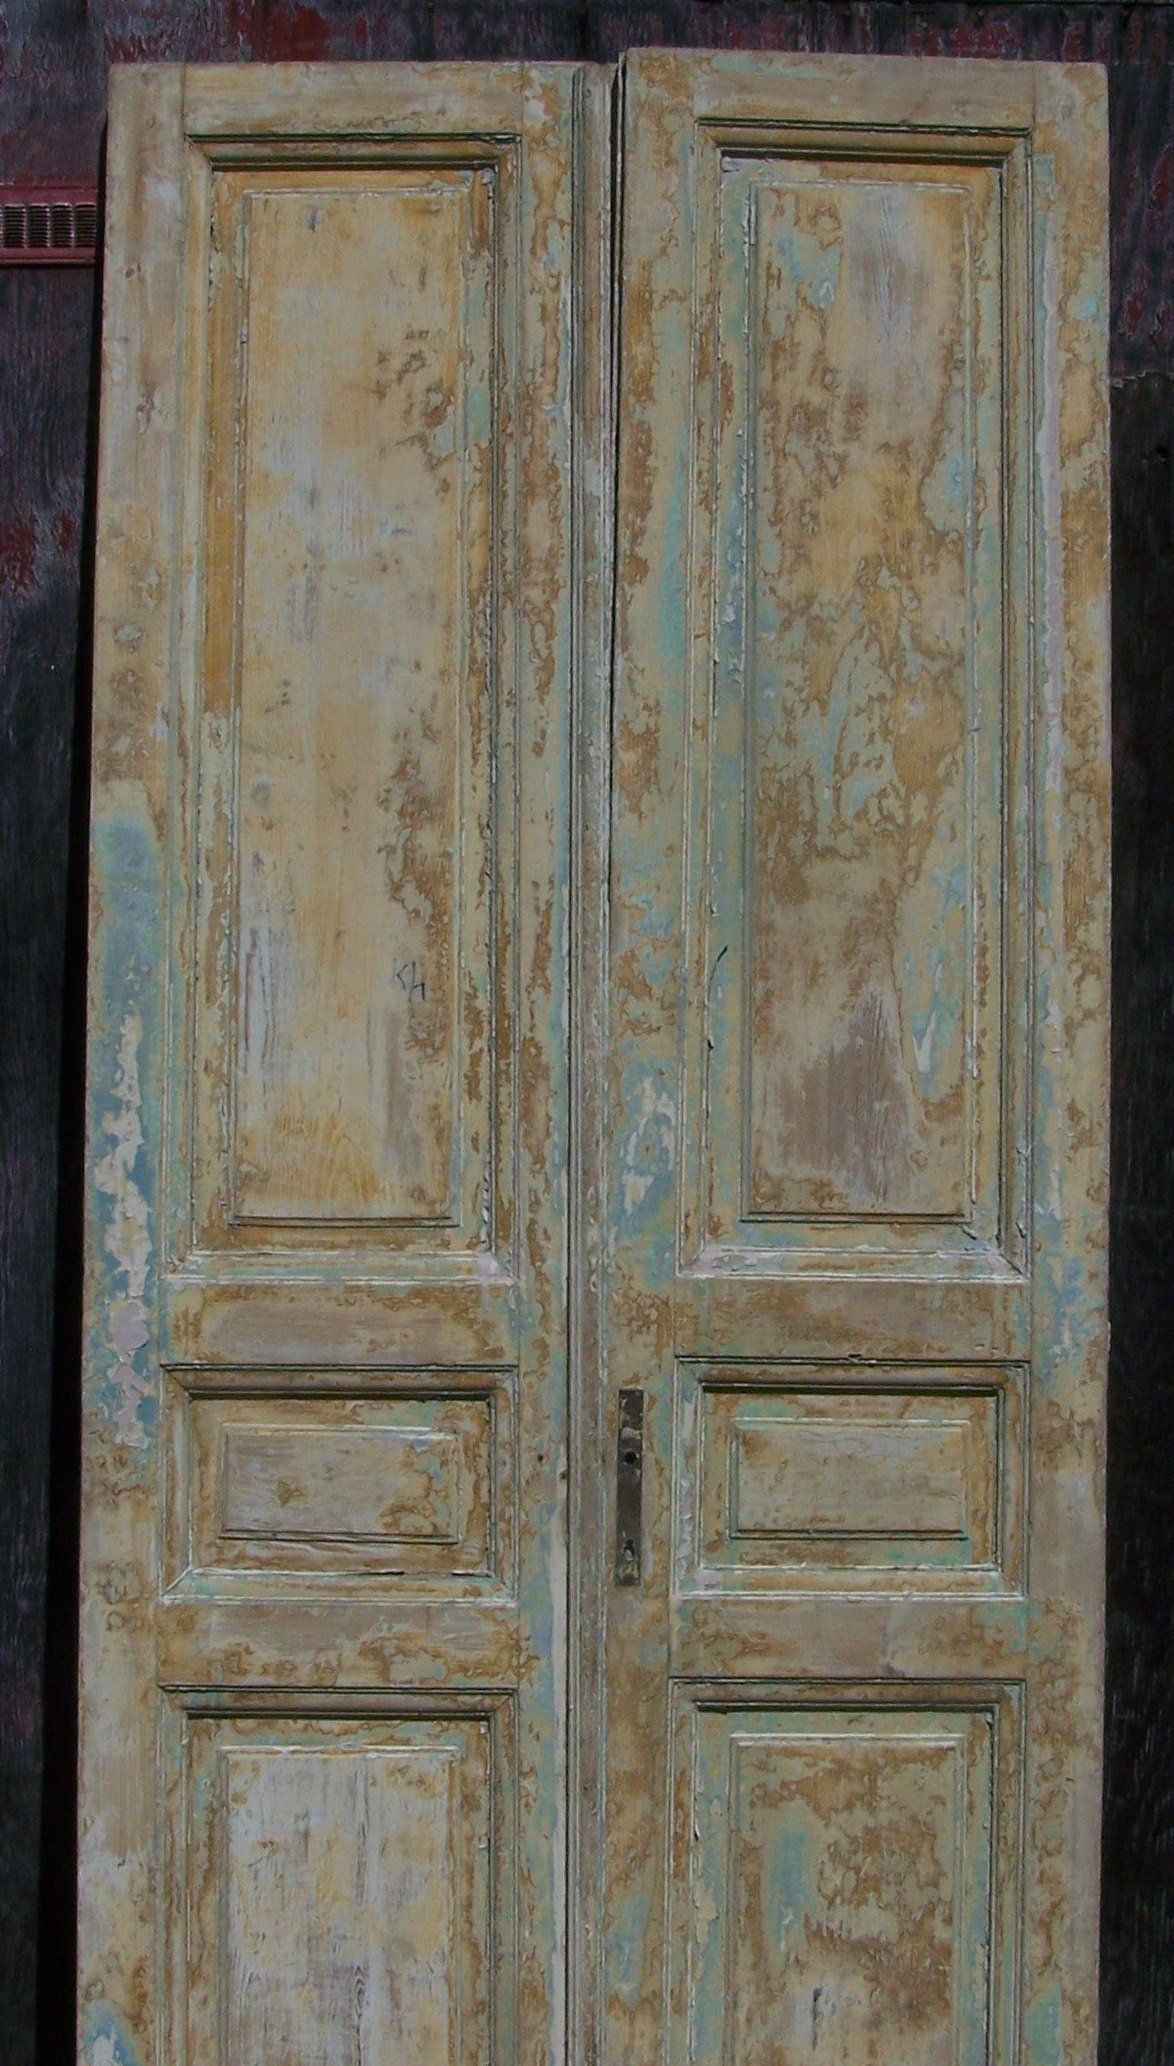 Antique Mediterranean Tall Wood Doors Raised Panel Golden Yellow Whitewash Turquoise Two Panel Door Tall Wo Antique French Doors Wood Balusters Two Panel Doors